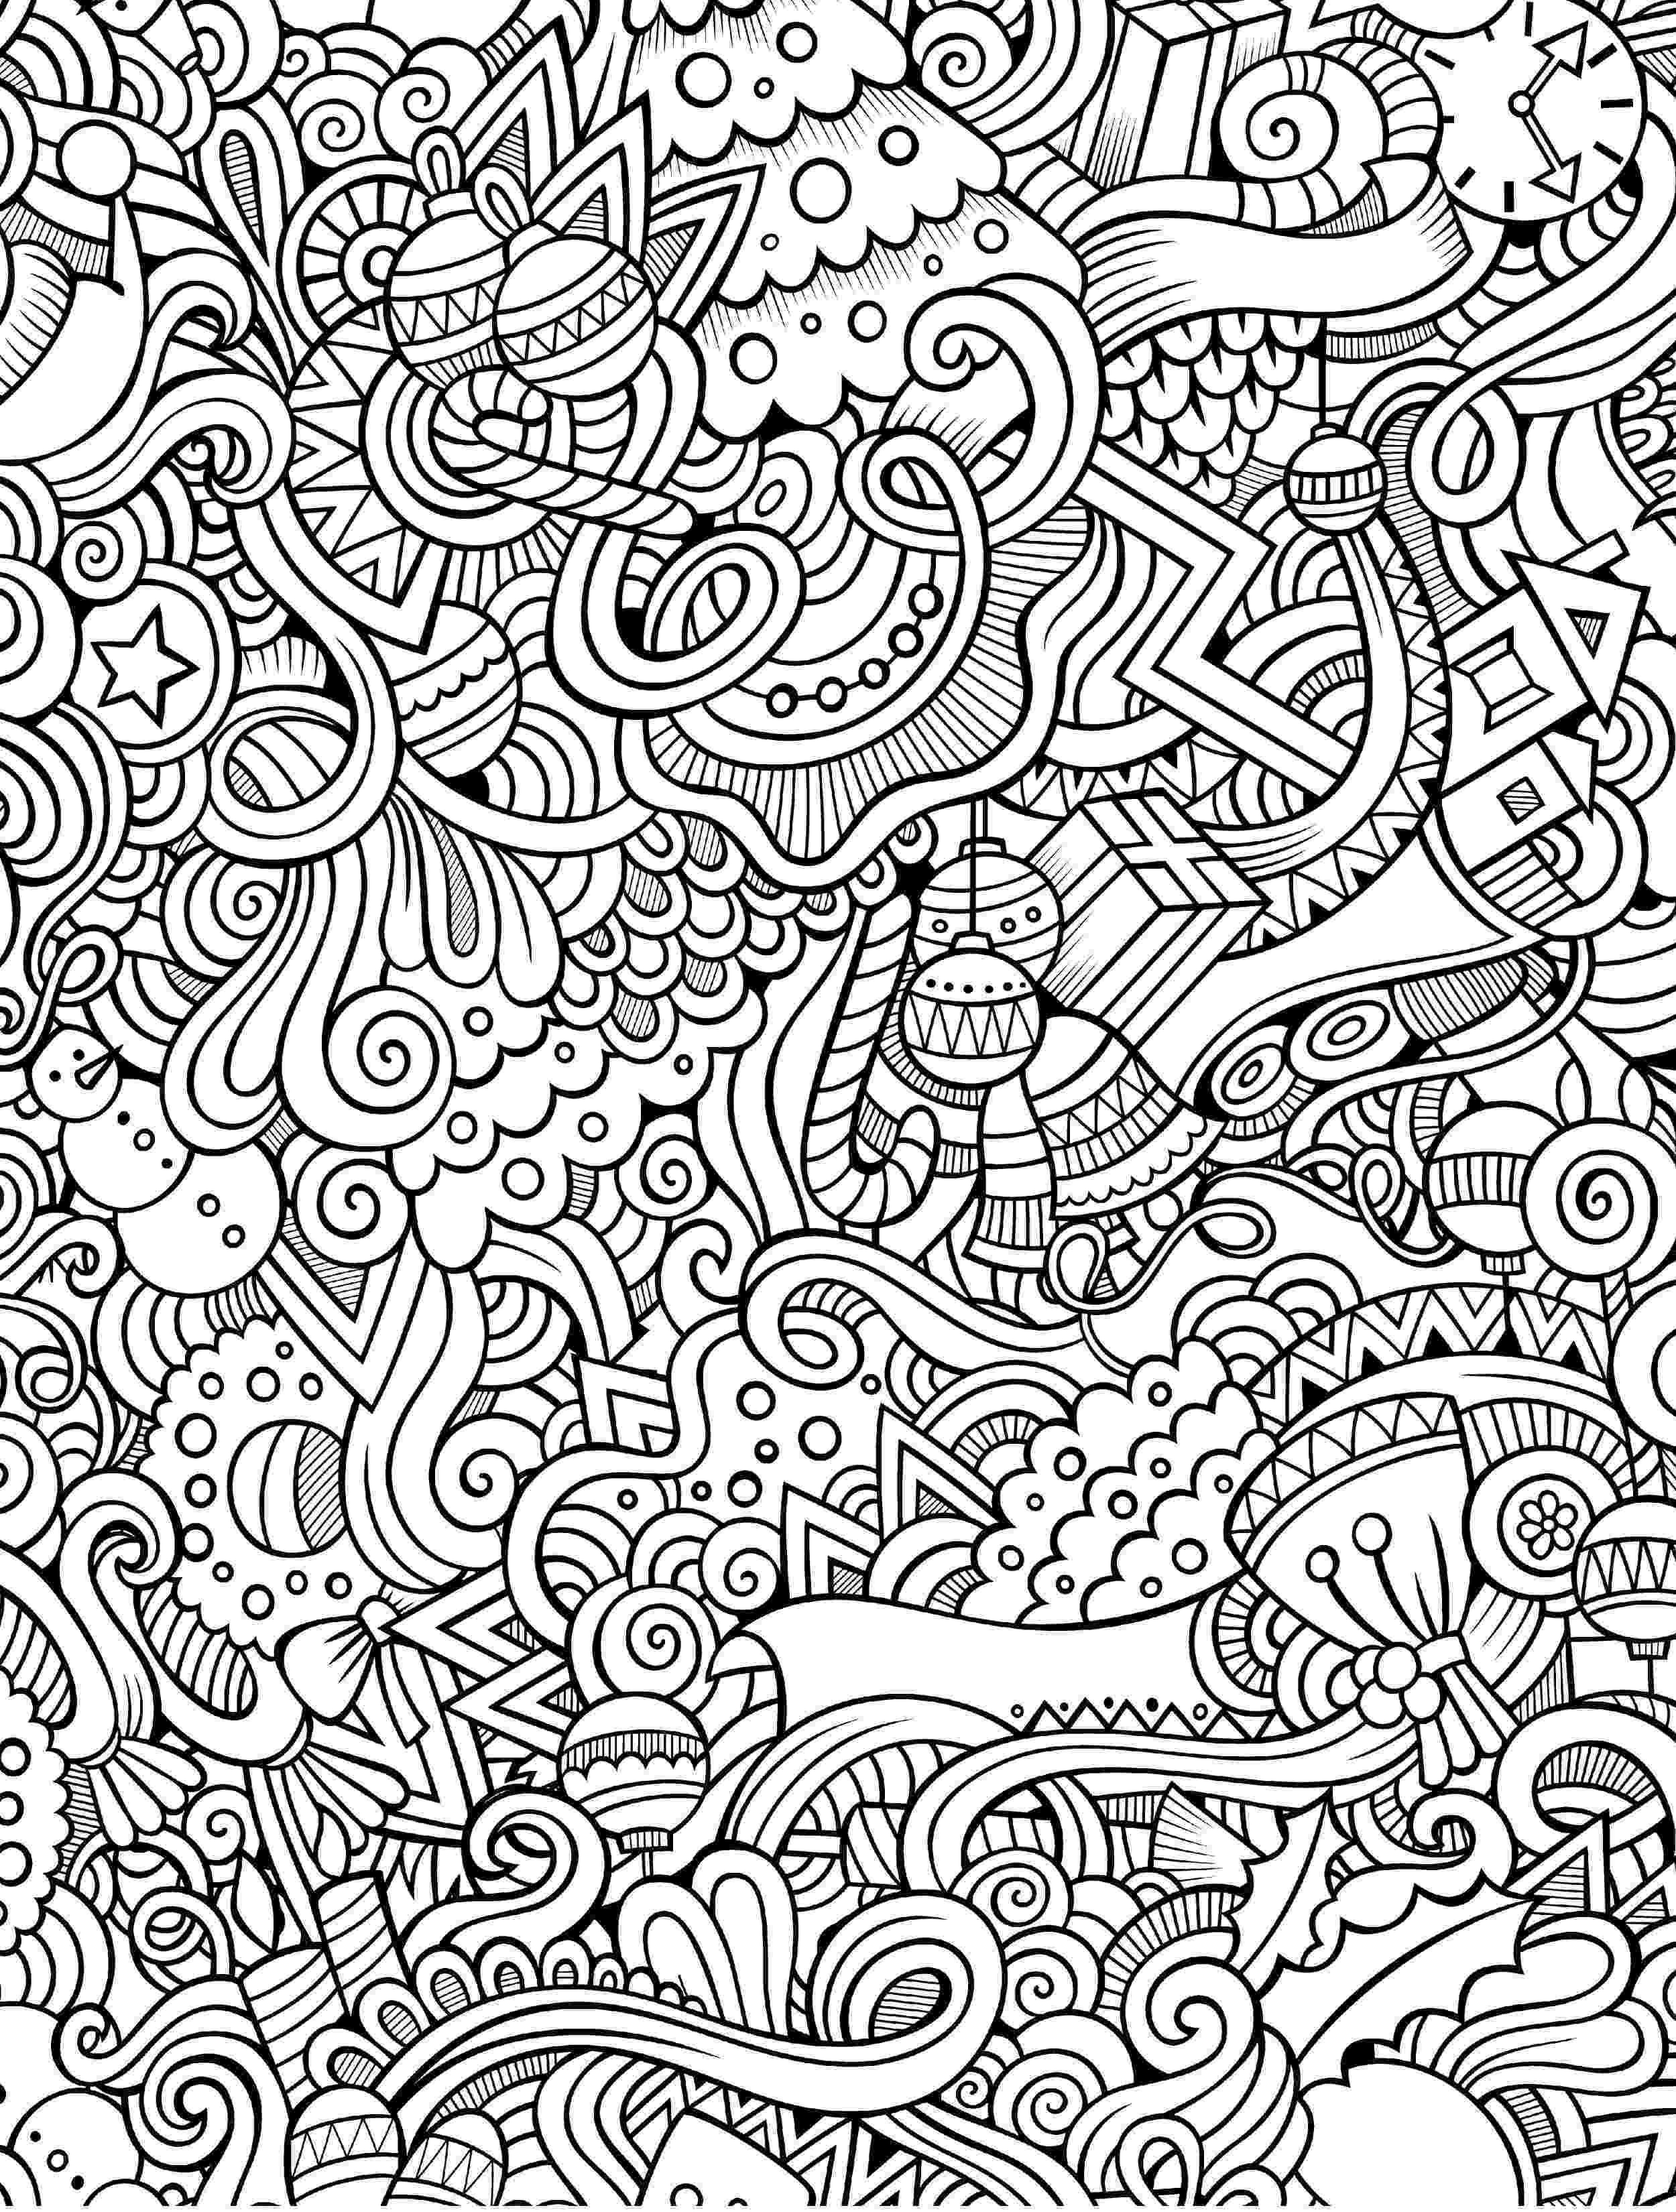 coloring pages for adults patterns 10 free printable holiday adult coloring pages heart for patterns coloring adults pages